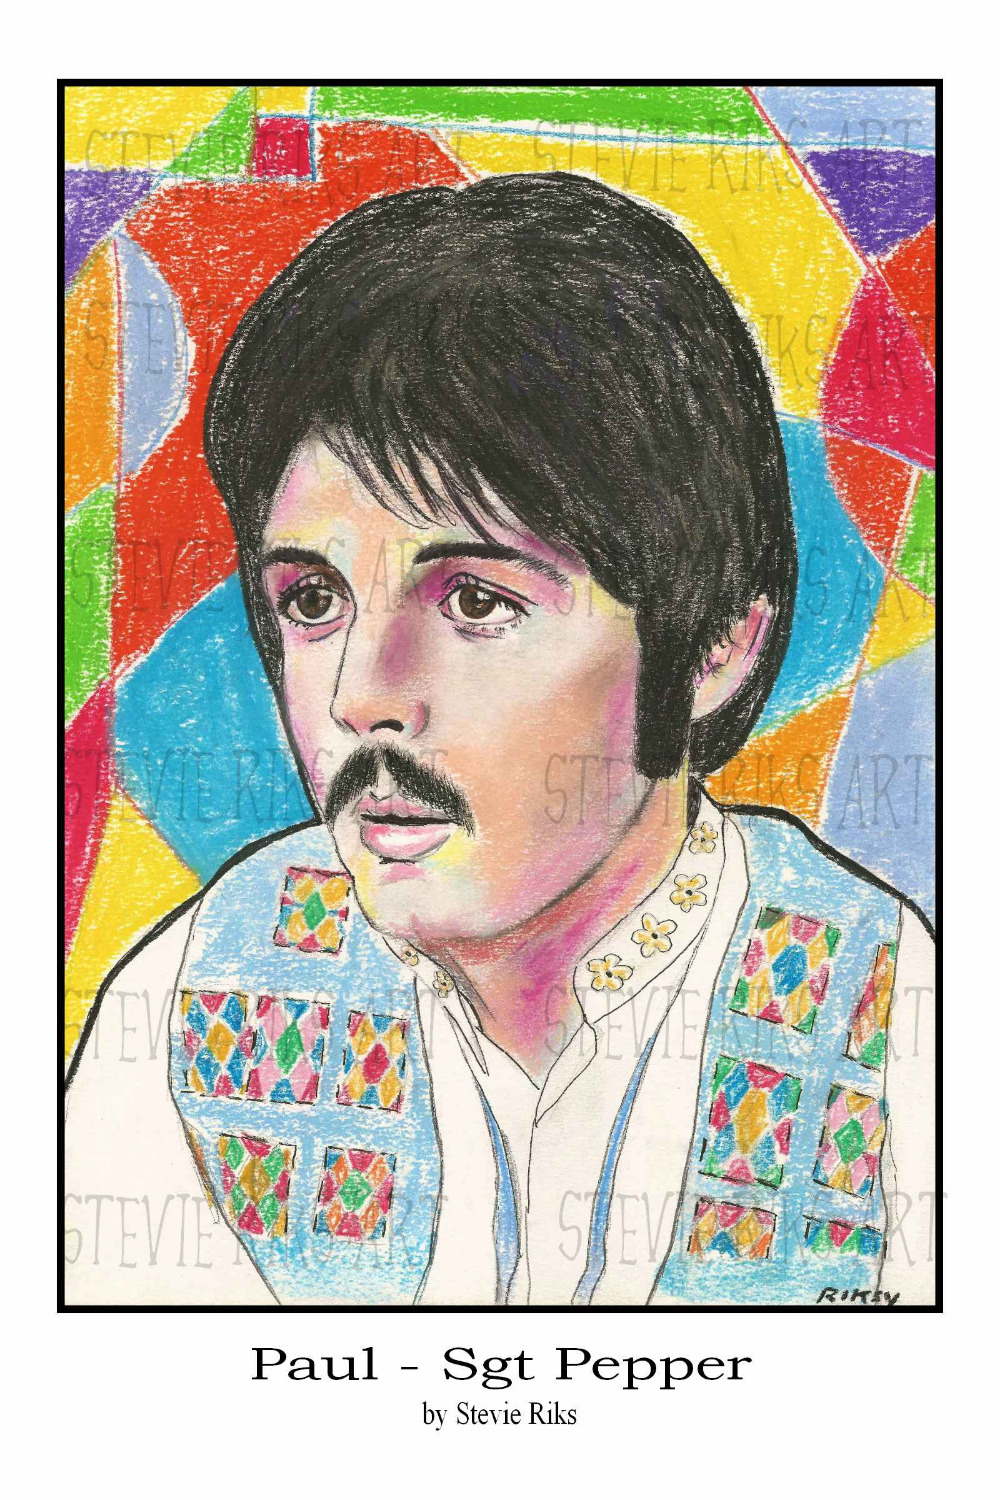 Paul Sgt Pepper